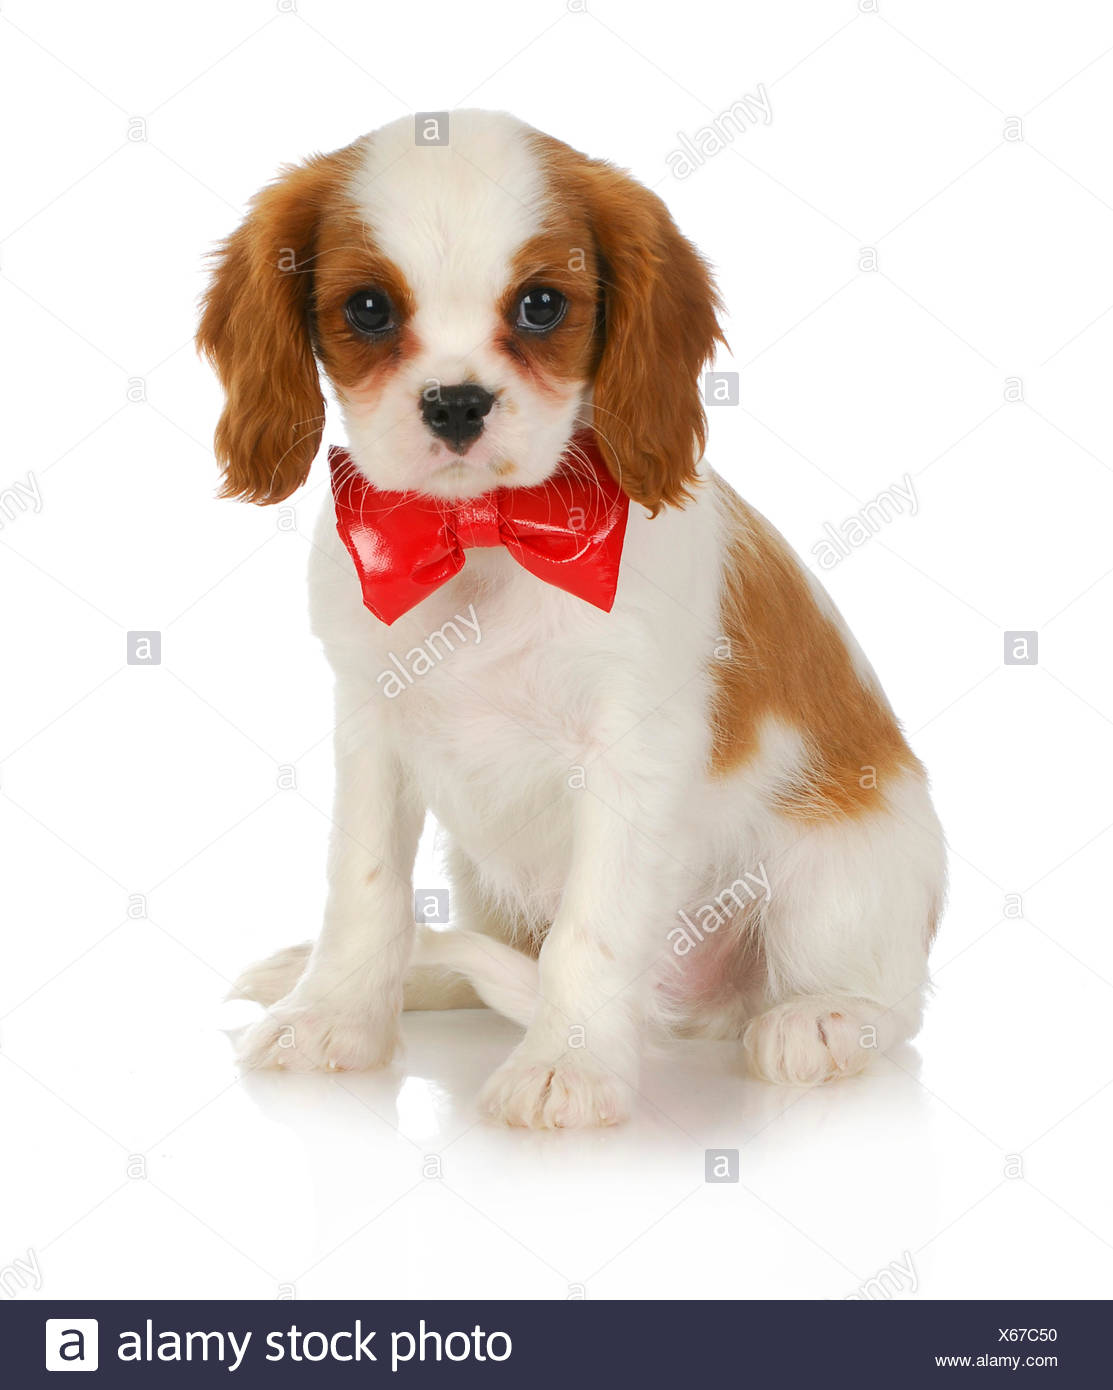 Cute Puppy Cavalier King Charles Spaniel Wearing Red Bowtie Sitting On White Background Stock Photo Alamy